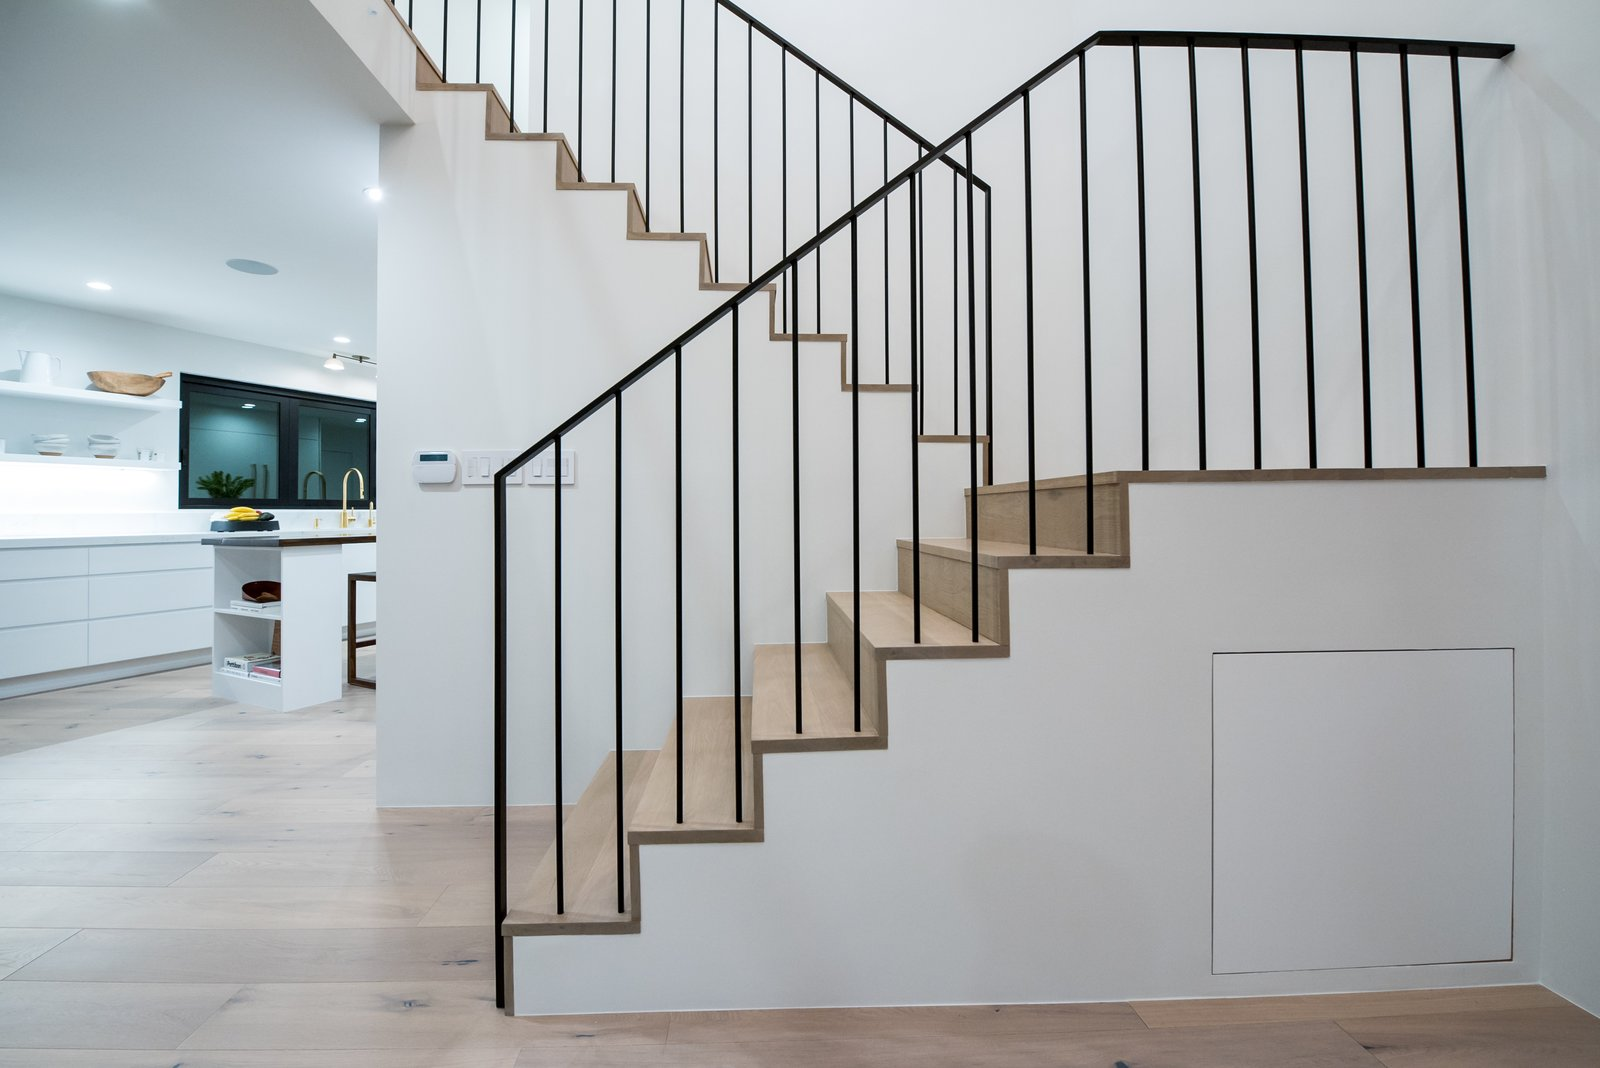 A custom handrail with spindles continuing directly into the treads and landings below allows for a clean minimal look.   The Oaks on Whitman by Landmark Building Inc.